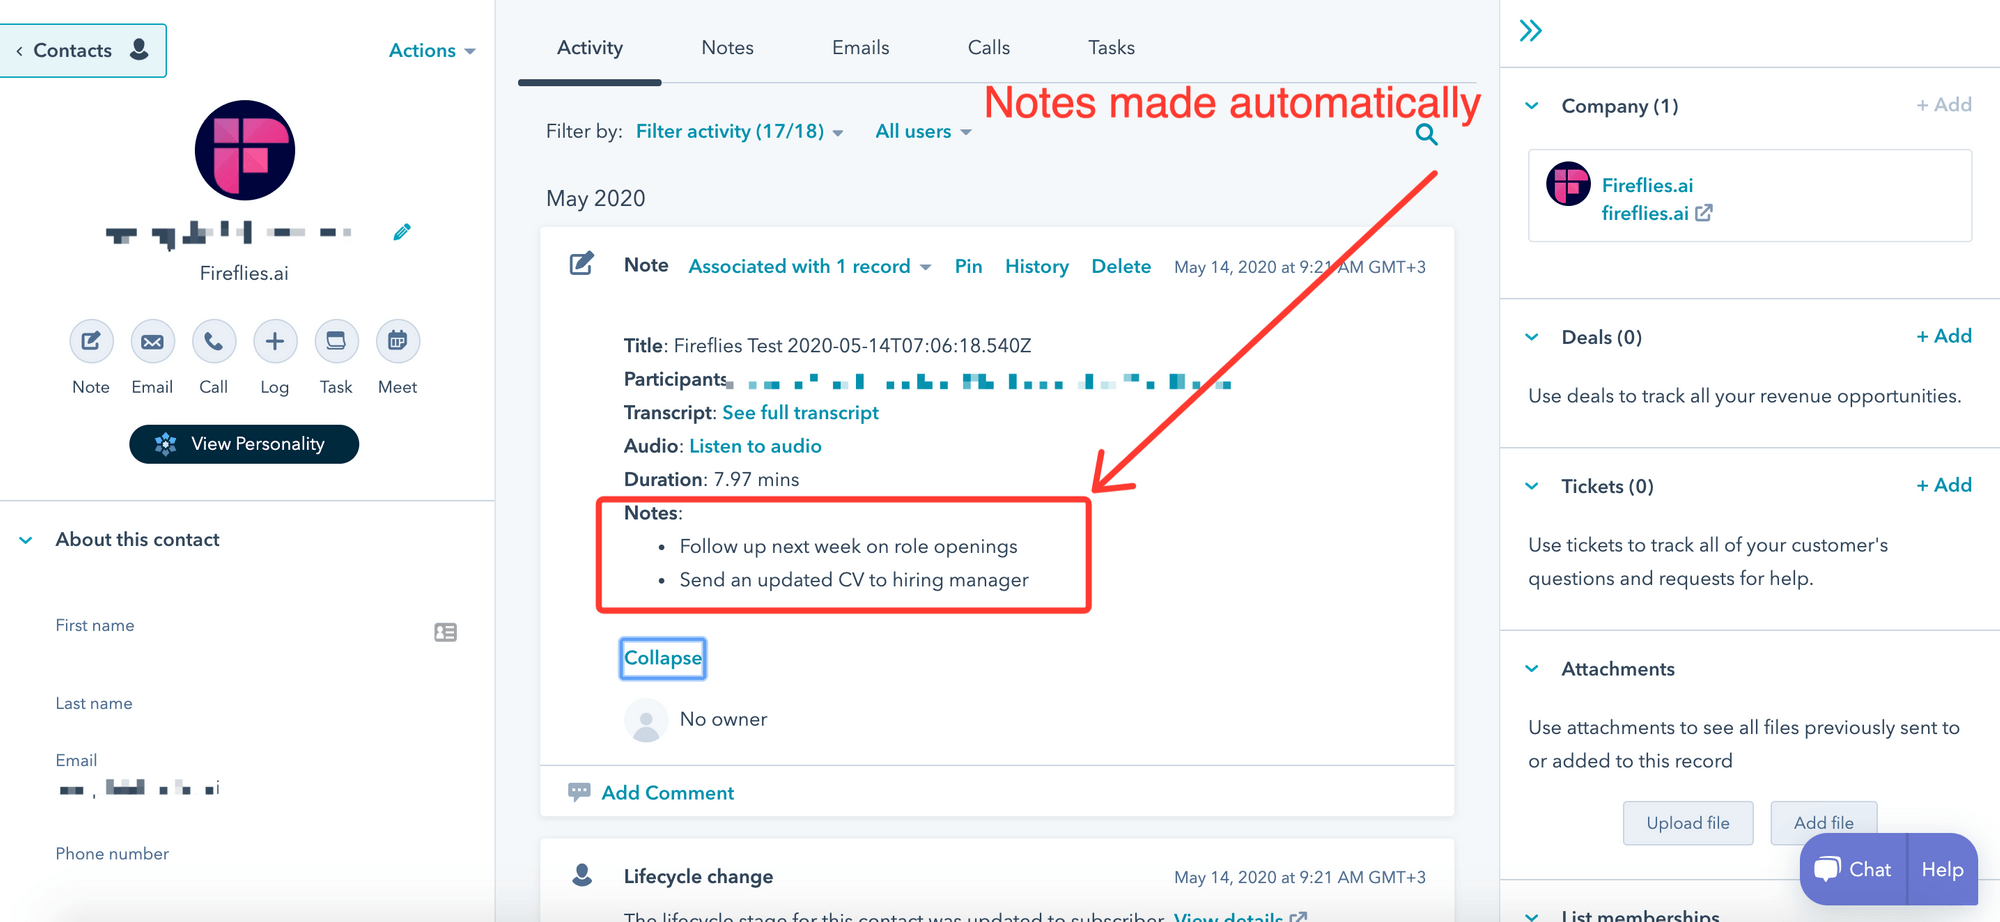 Automatically make notes in Hubspot CRM